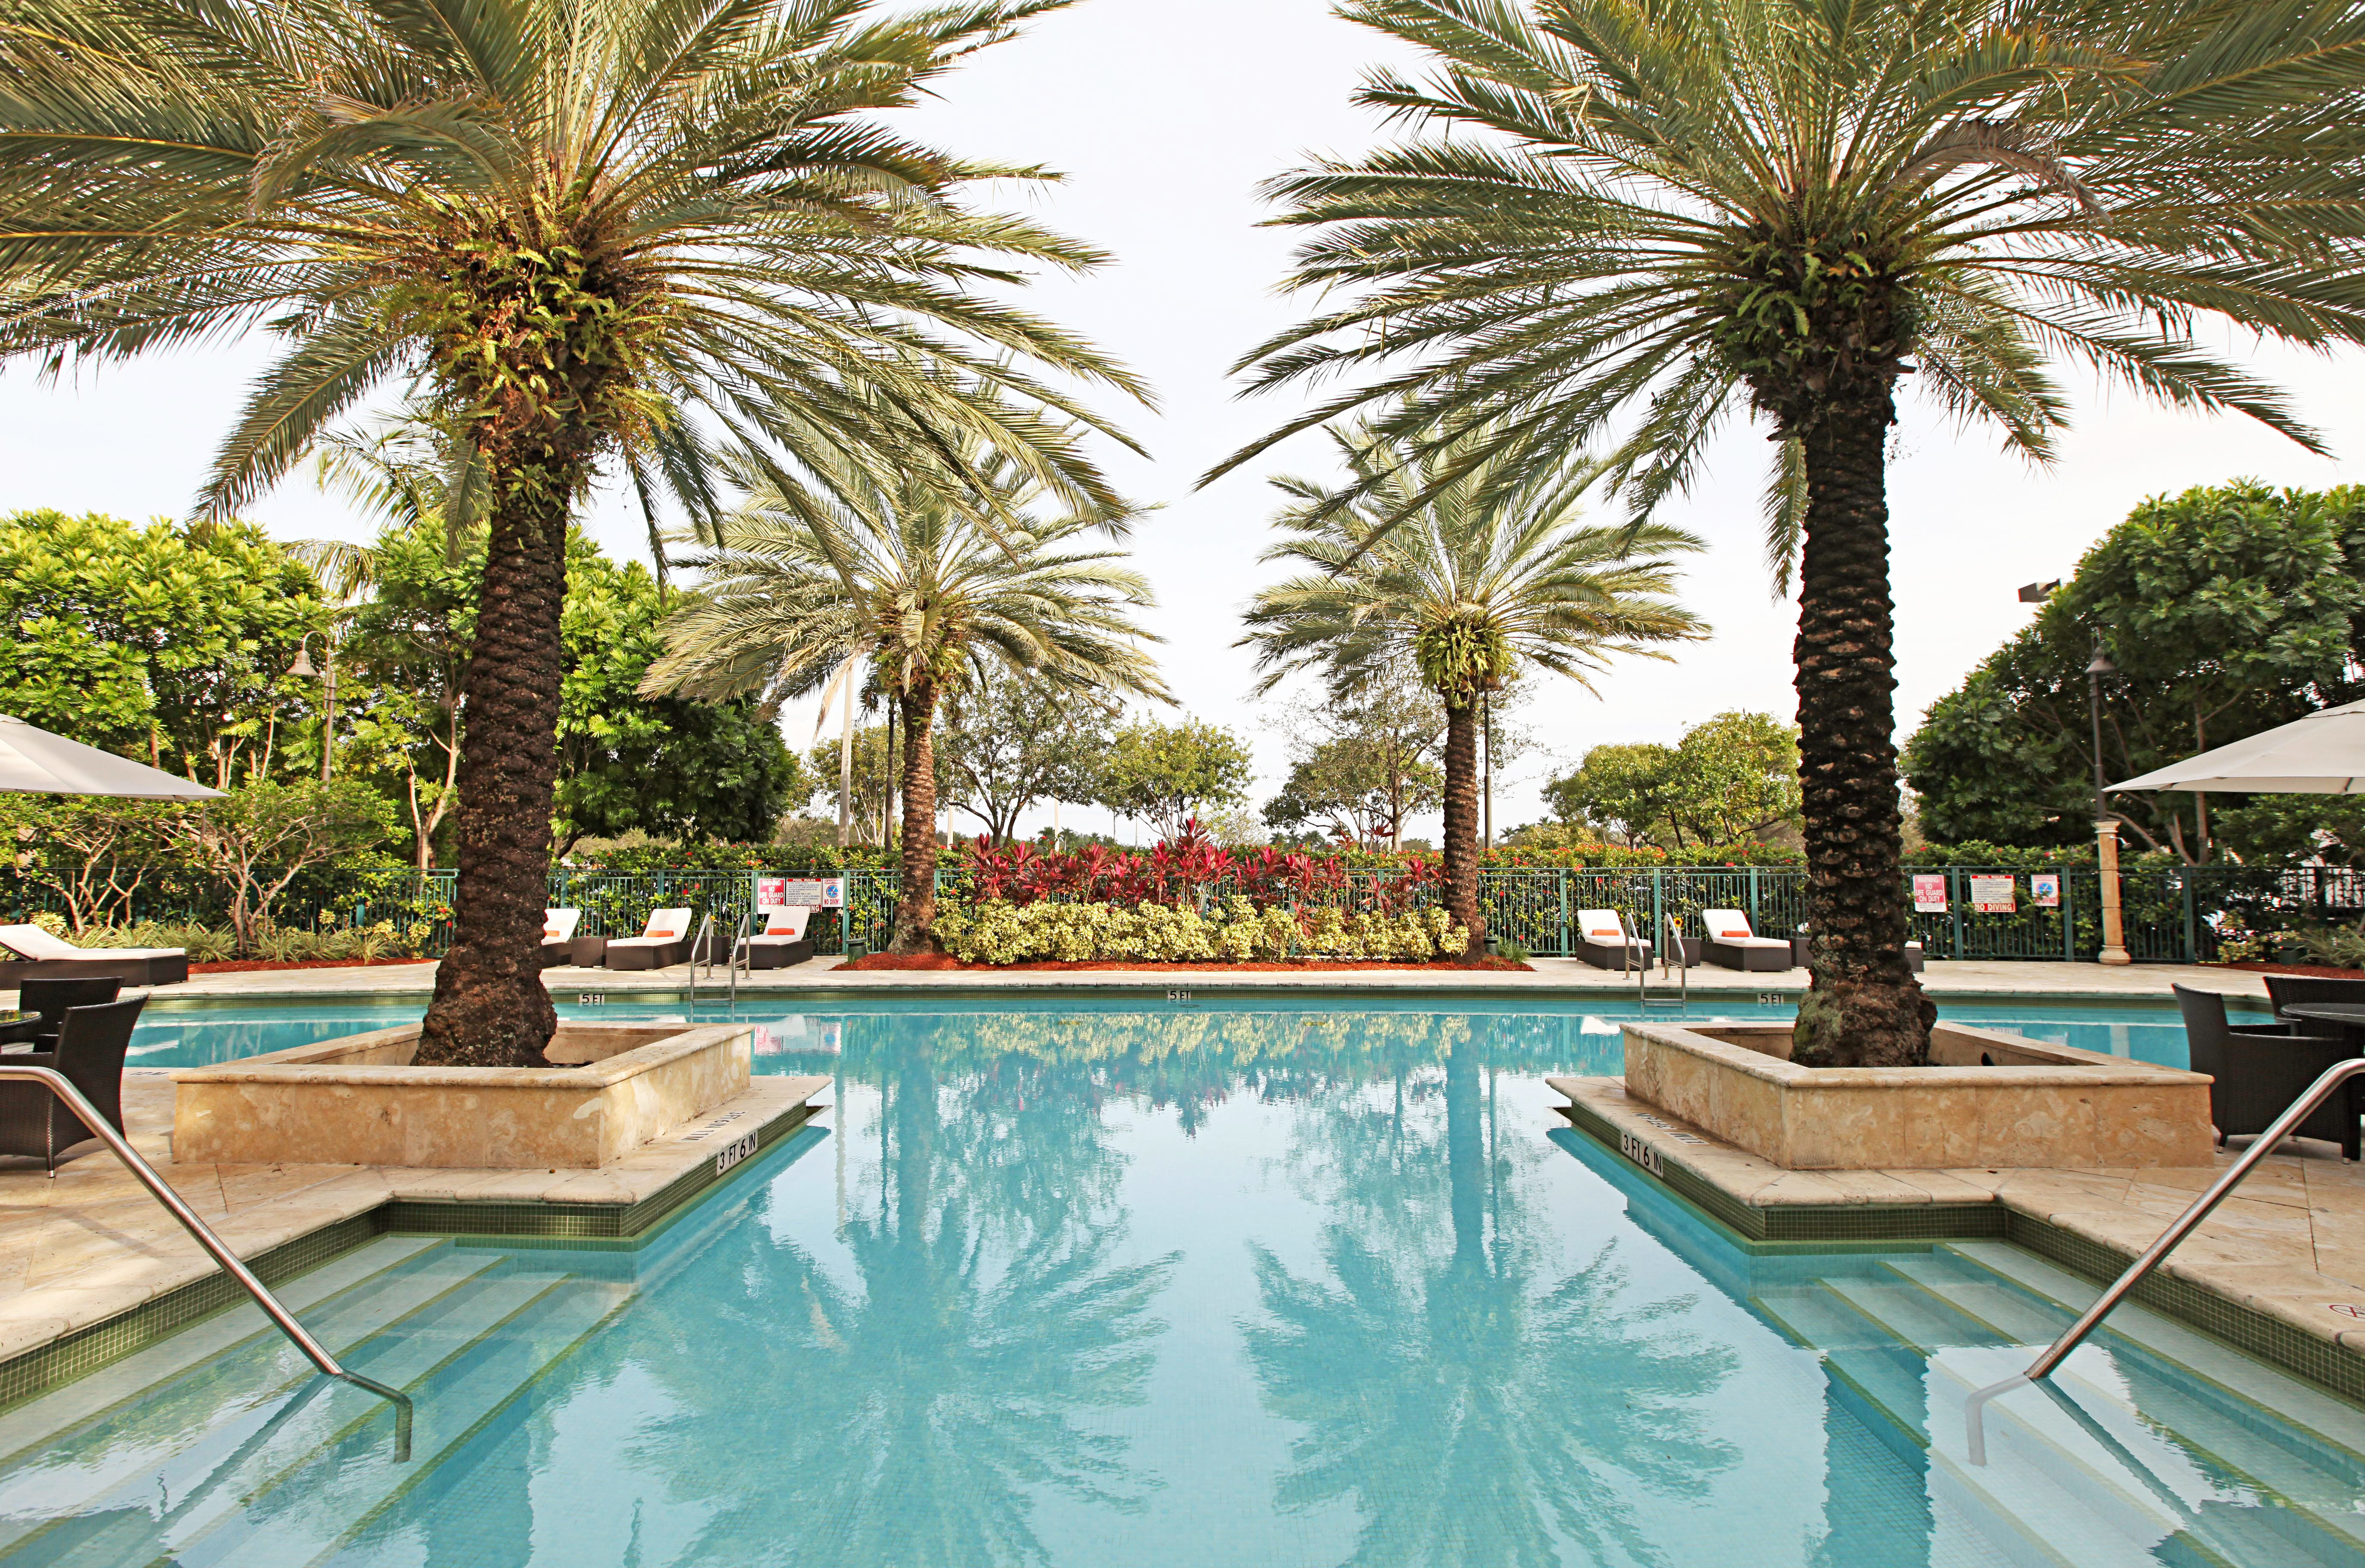 Play Pool Resort tree palm swimming pool property plant reflecting pool arecales Villa lined